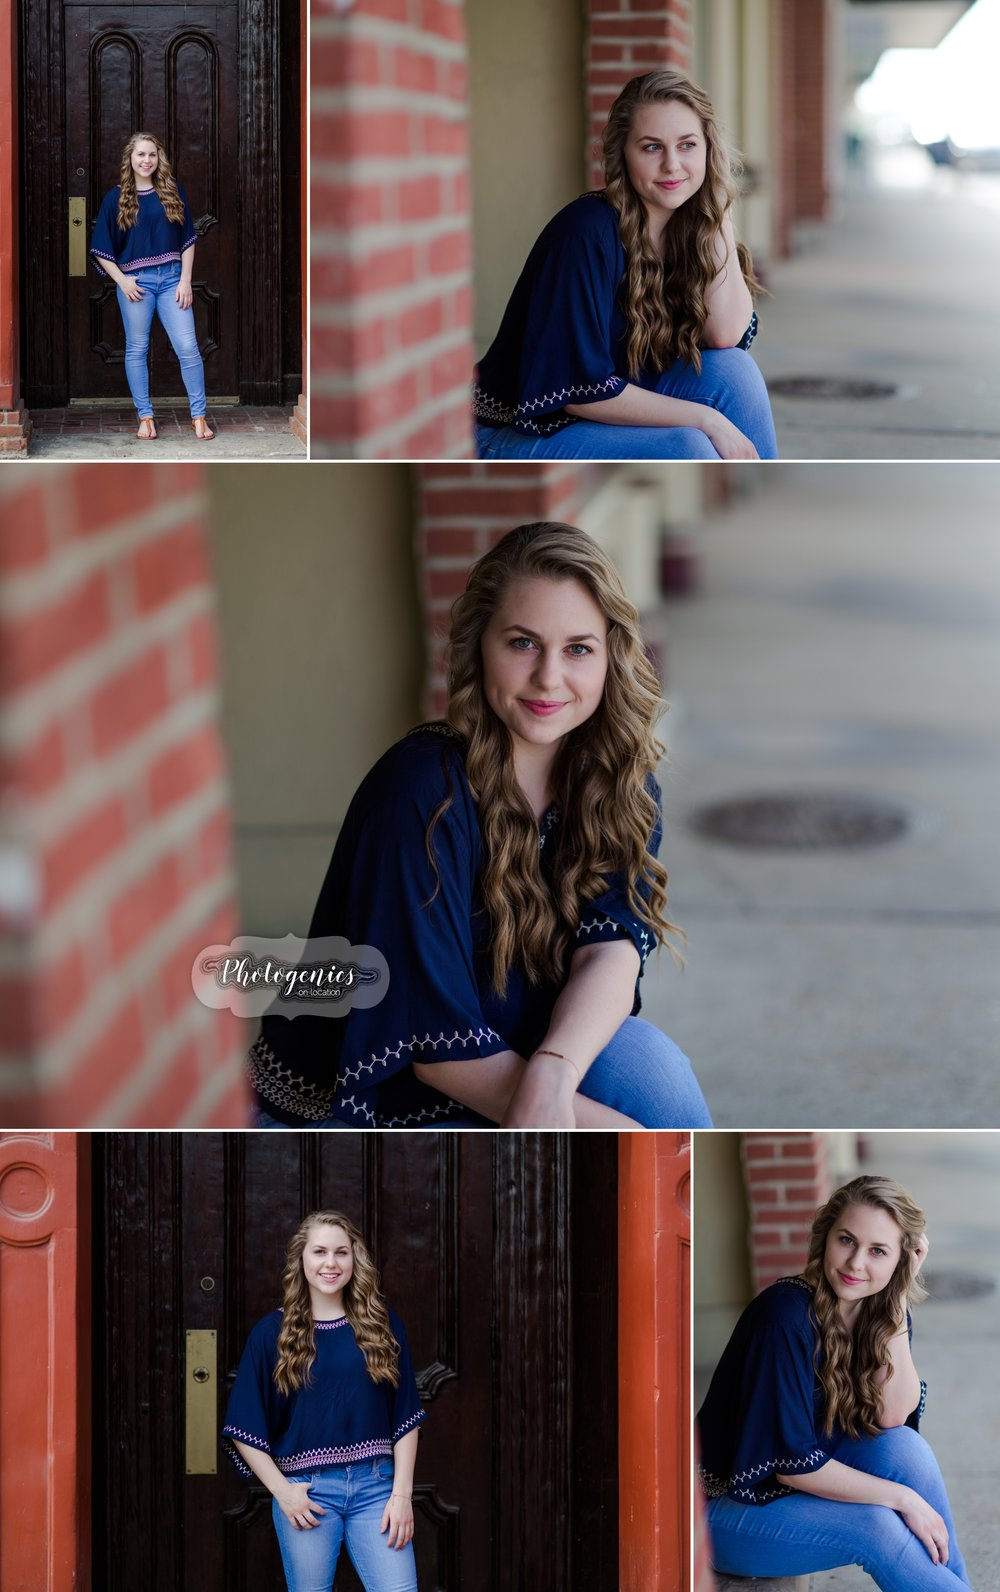 senior_girl_urban_photography_poses_small_town_ideas_missouri_outdoor_cafe_unique_morning_pretty_lighting_posing_outfit_what_to_wear_buildings_simple